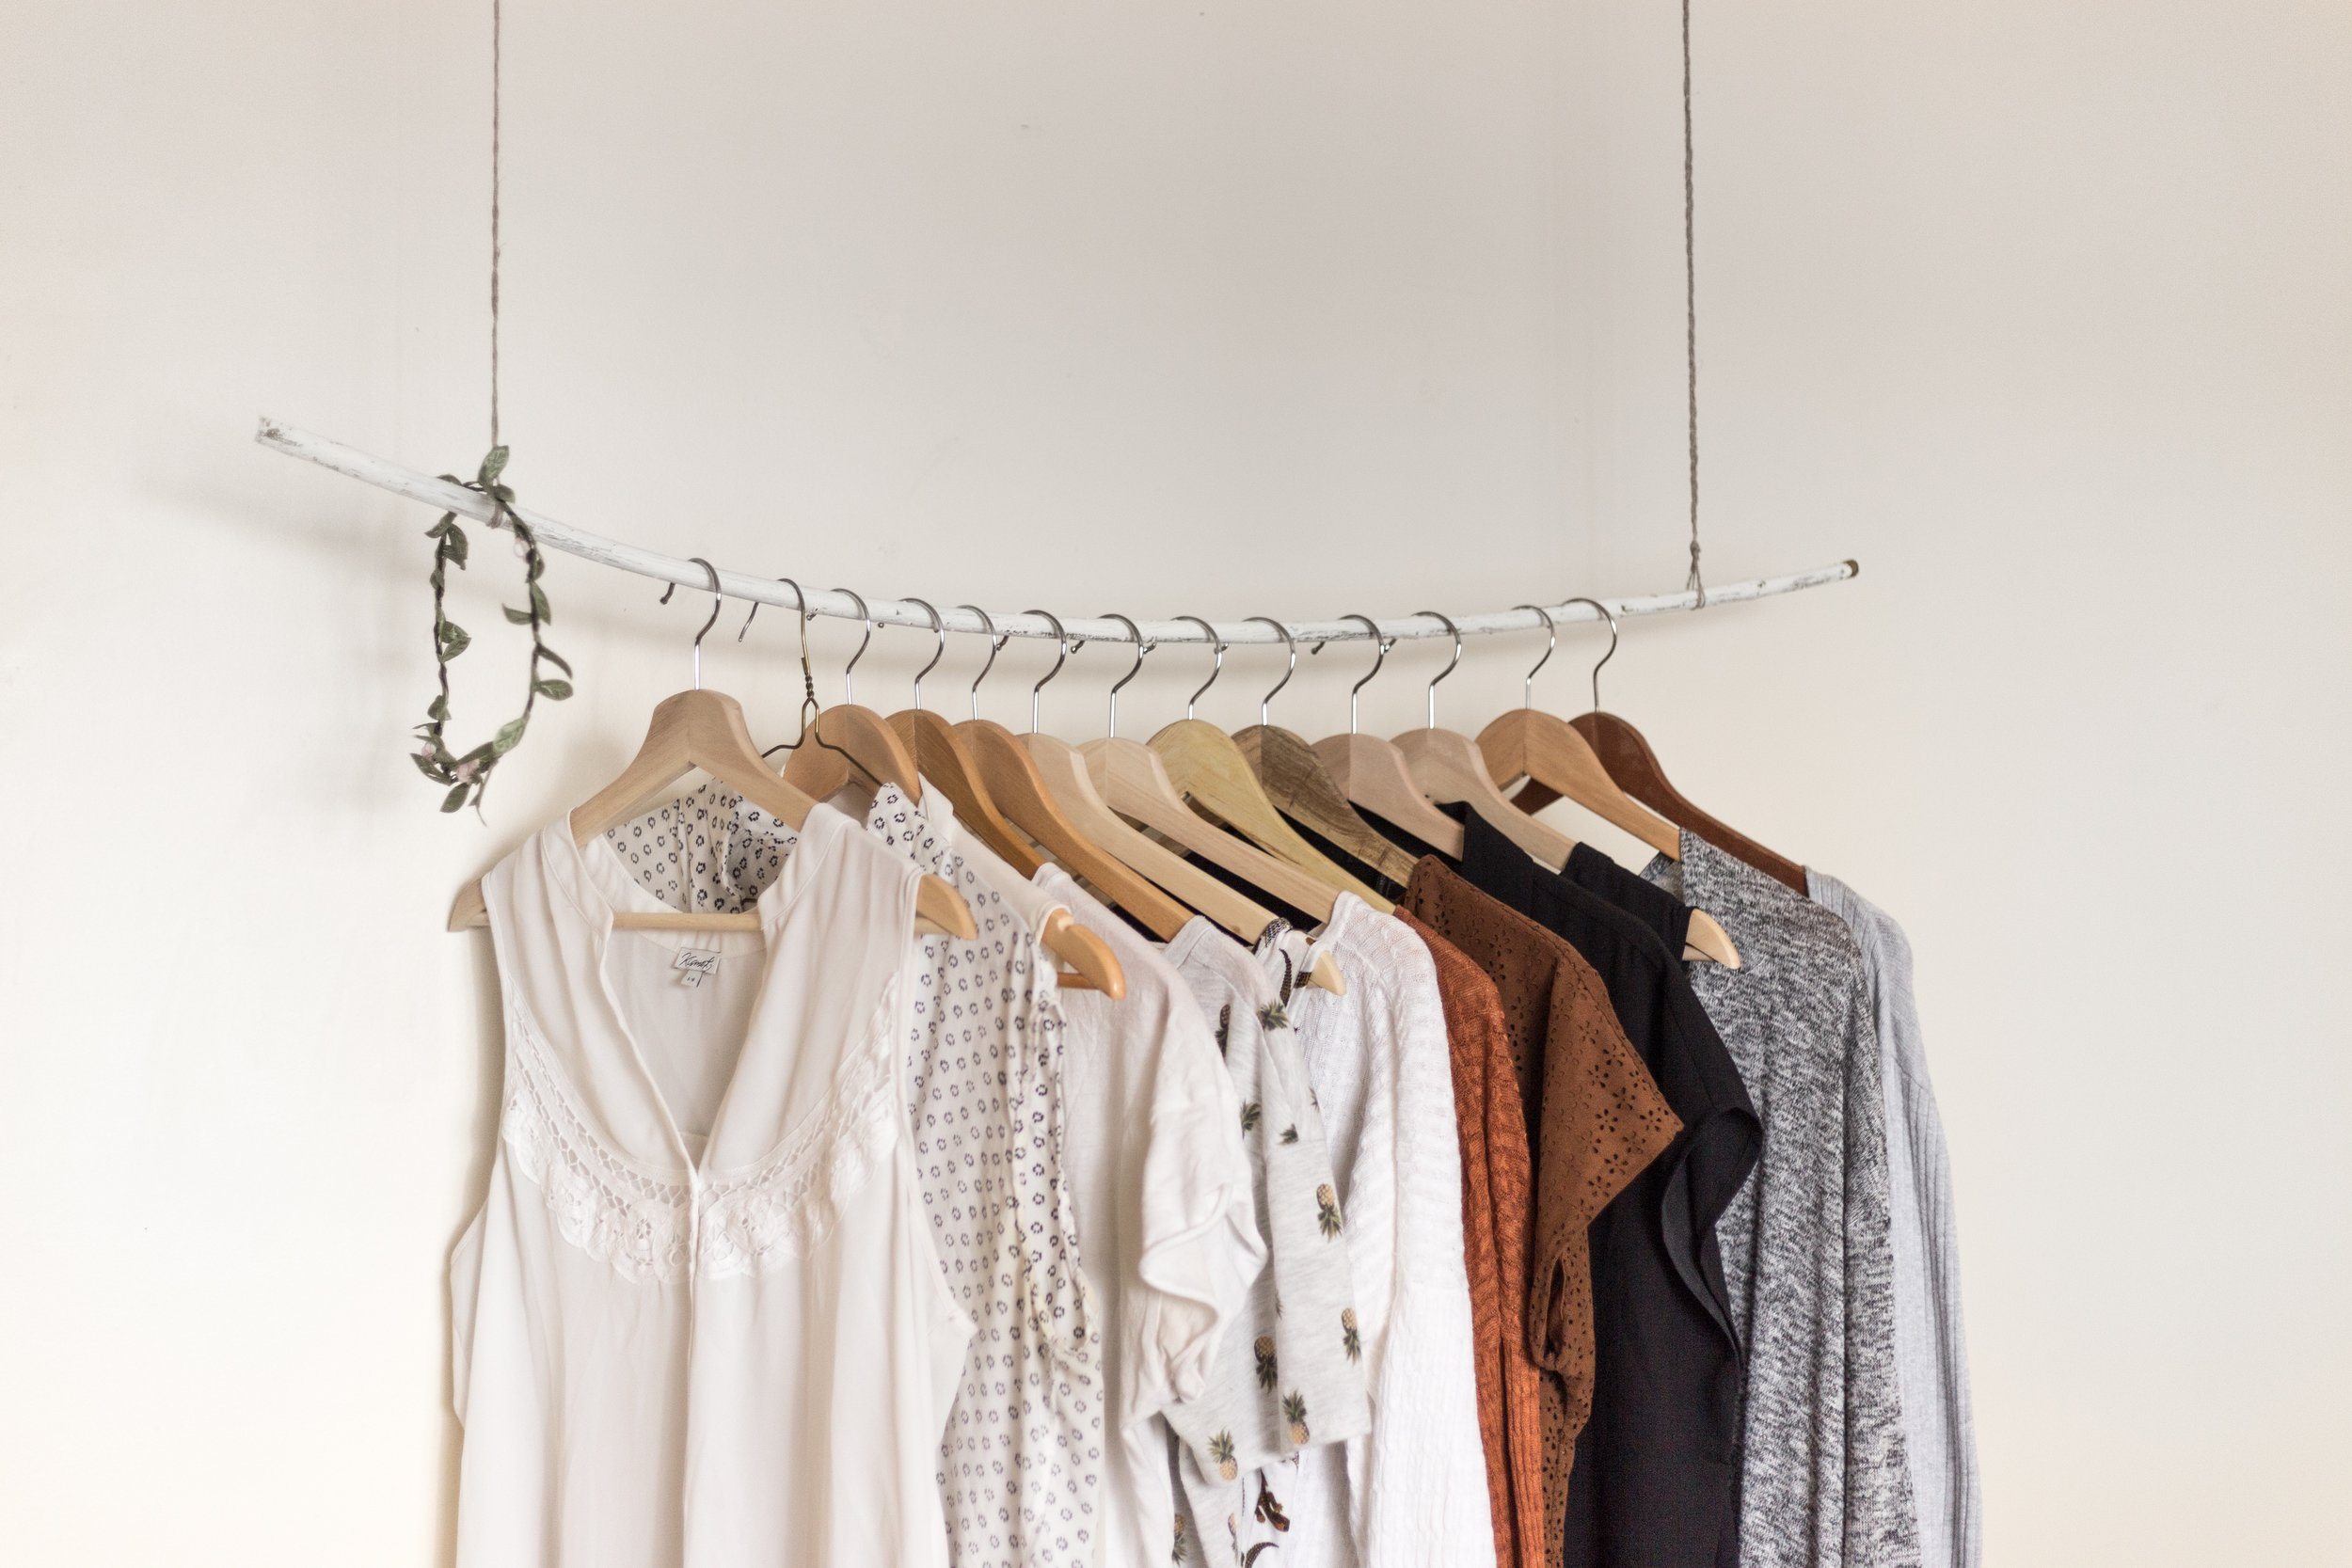 A Wardrobe That Has Been Organised & Decluttered